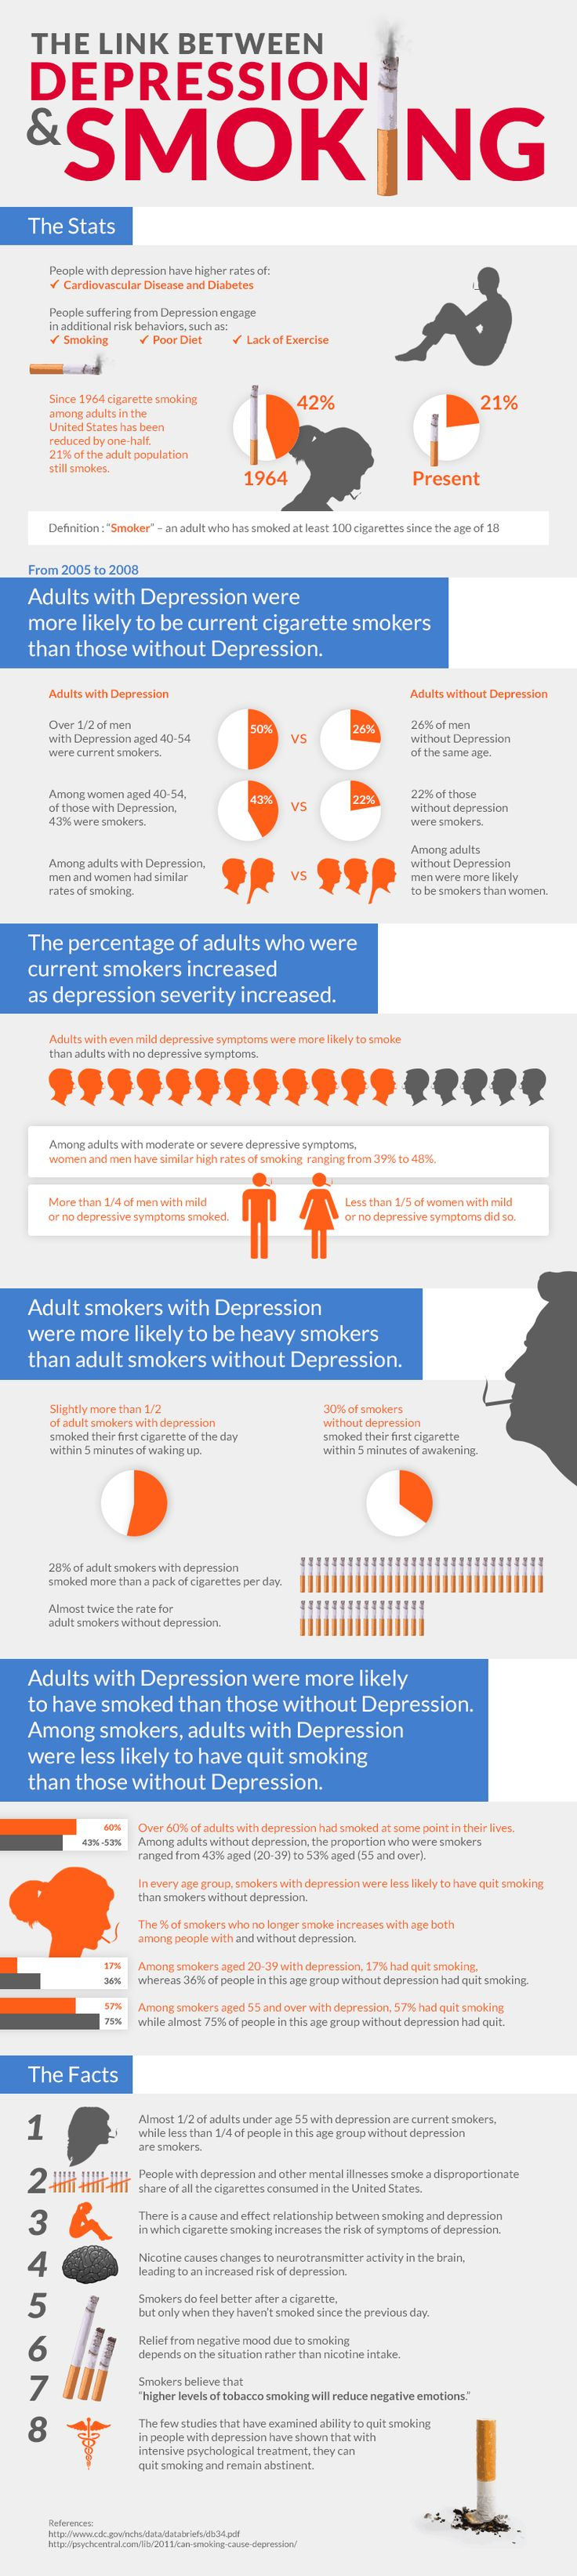 17 Best images about Help someone to stop smoking on ...